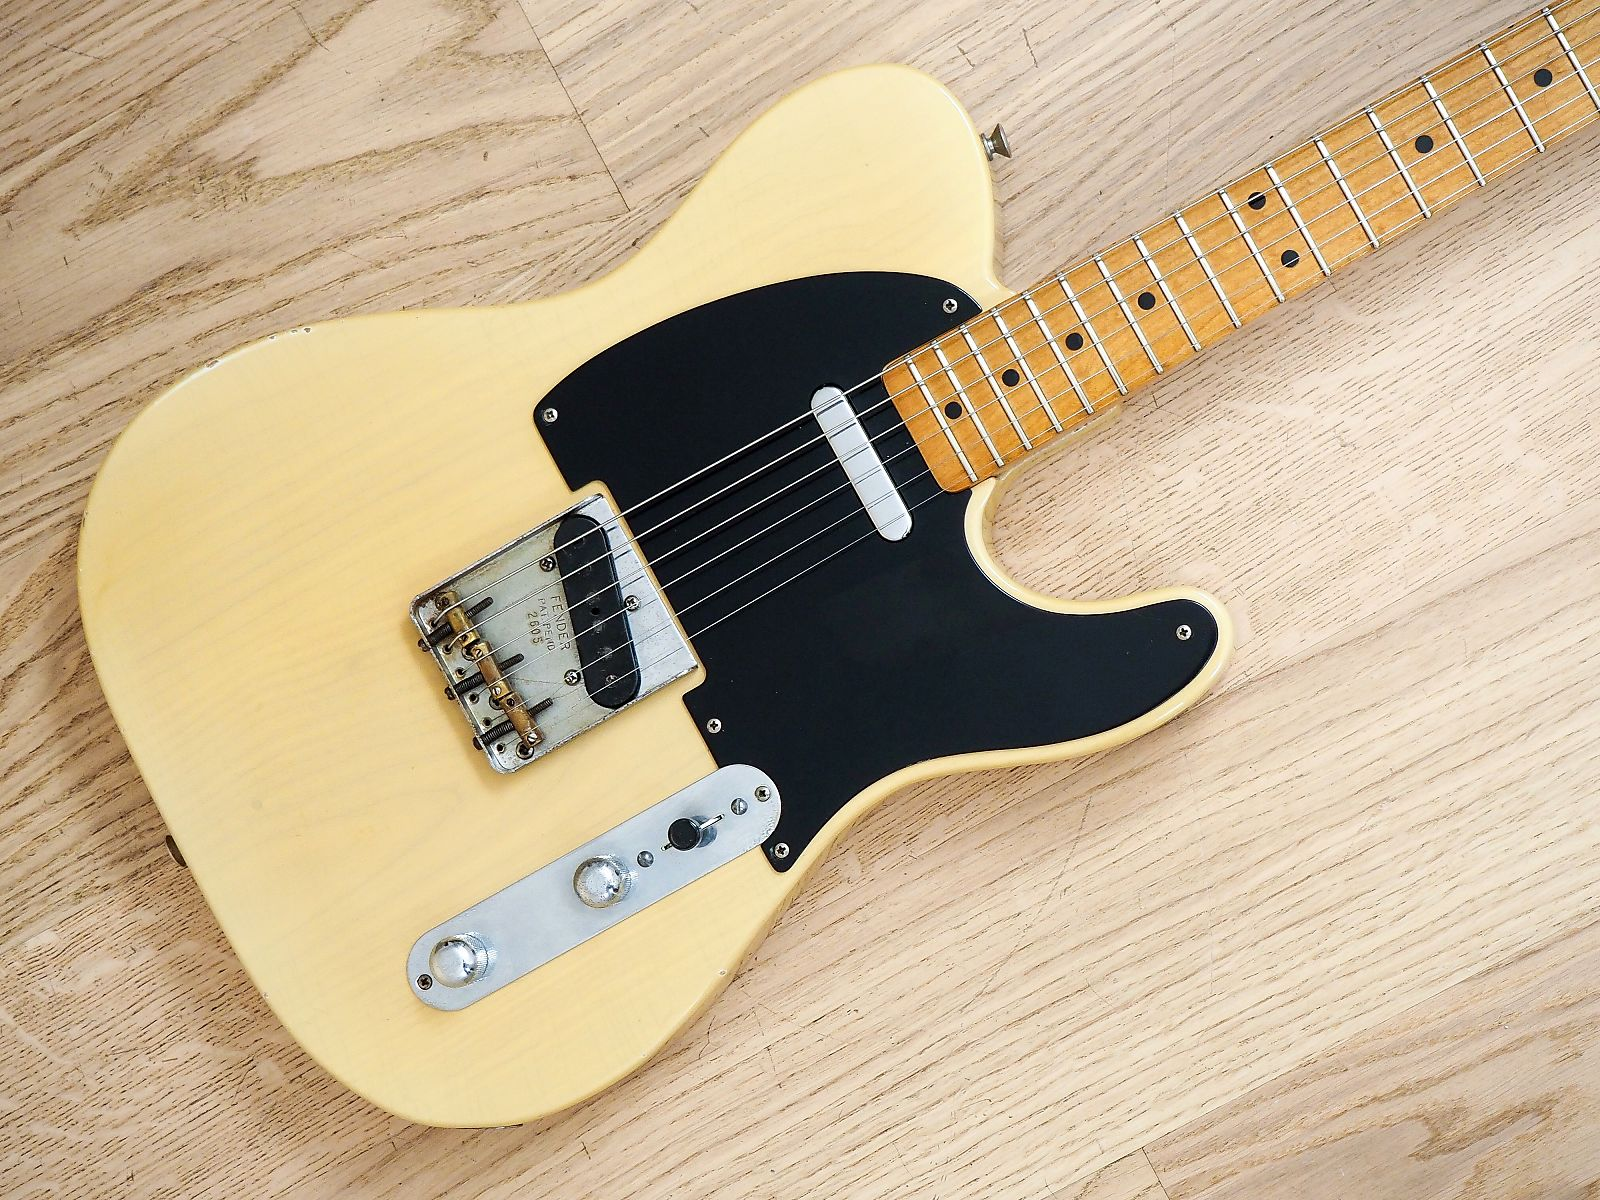 0c59e471c57 1953 Fender Telecaster Vintage Electric Guitar Blackguard Ash, Tadeo Gomez  signed neck w/ Case